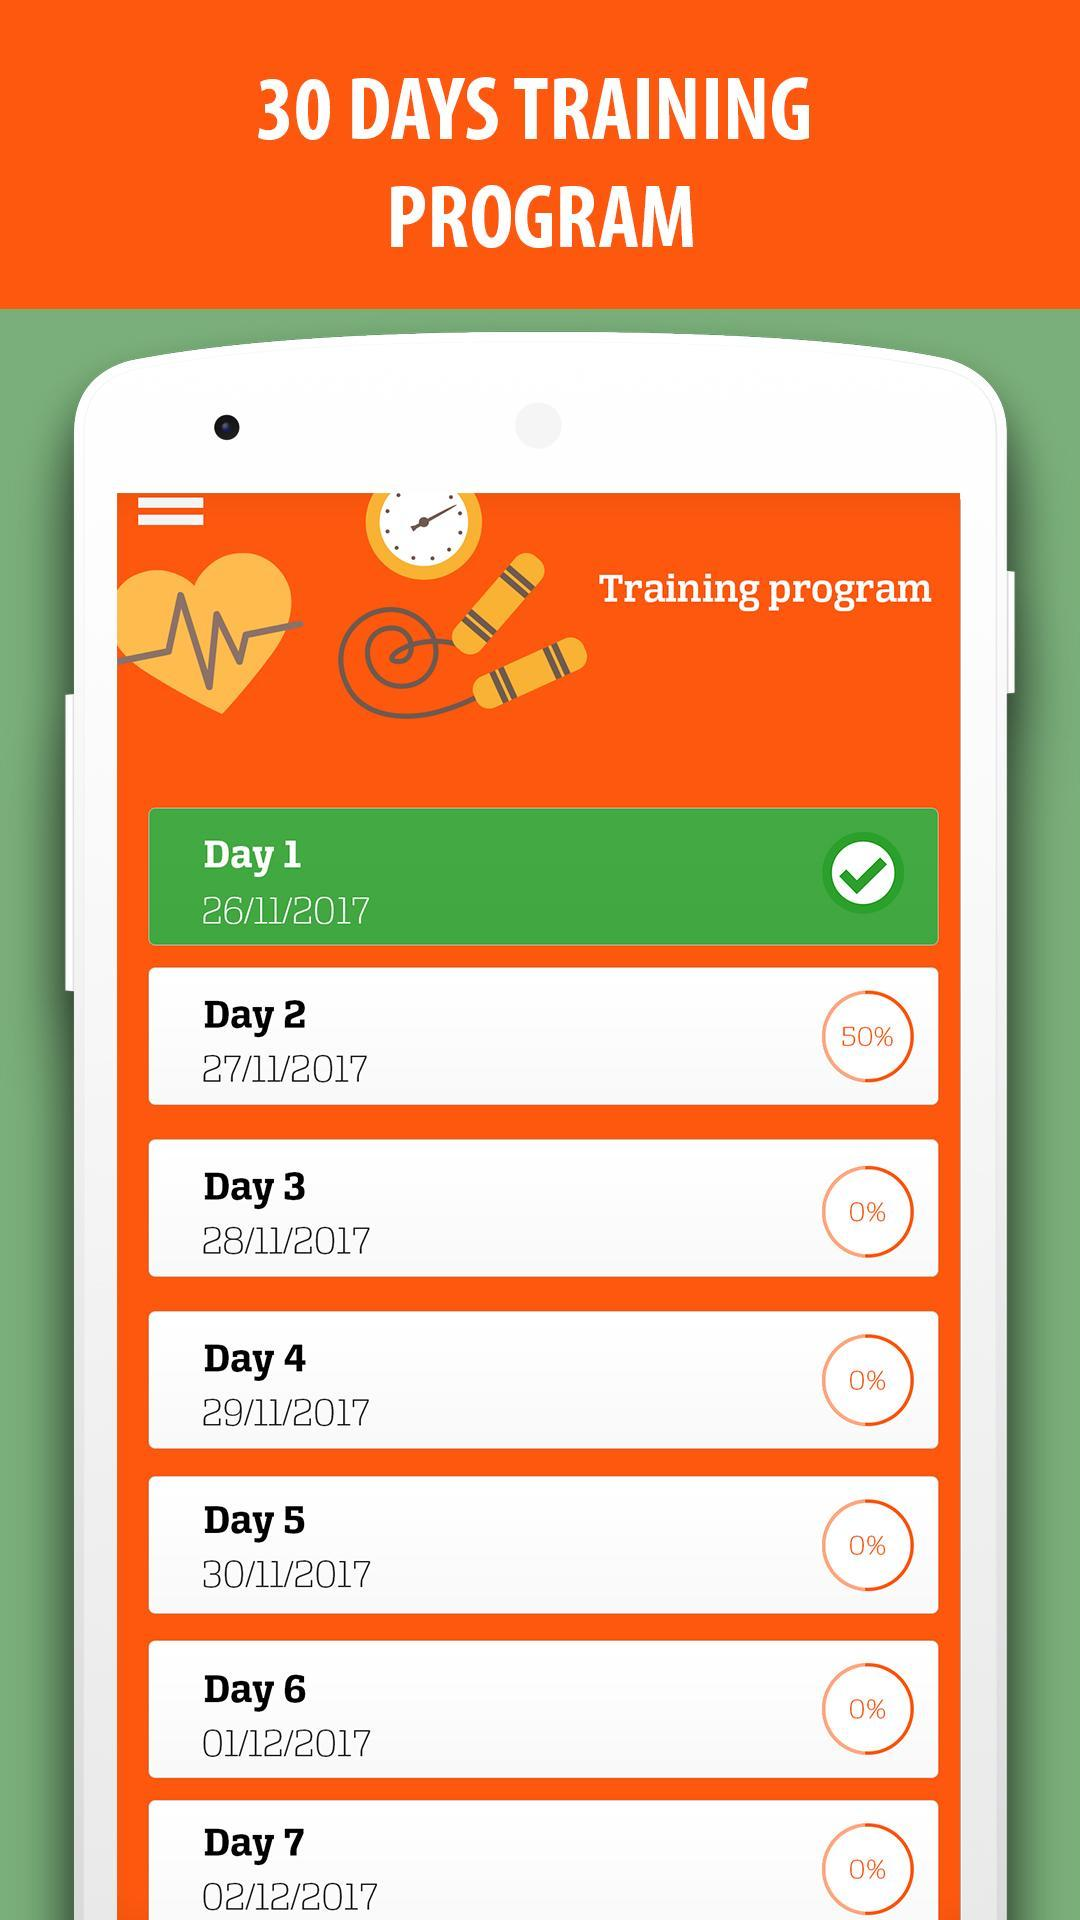 Lose weight: diet and exercises in 30 days for Android - APK